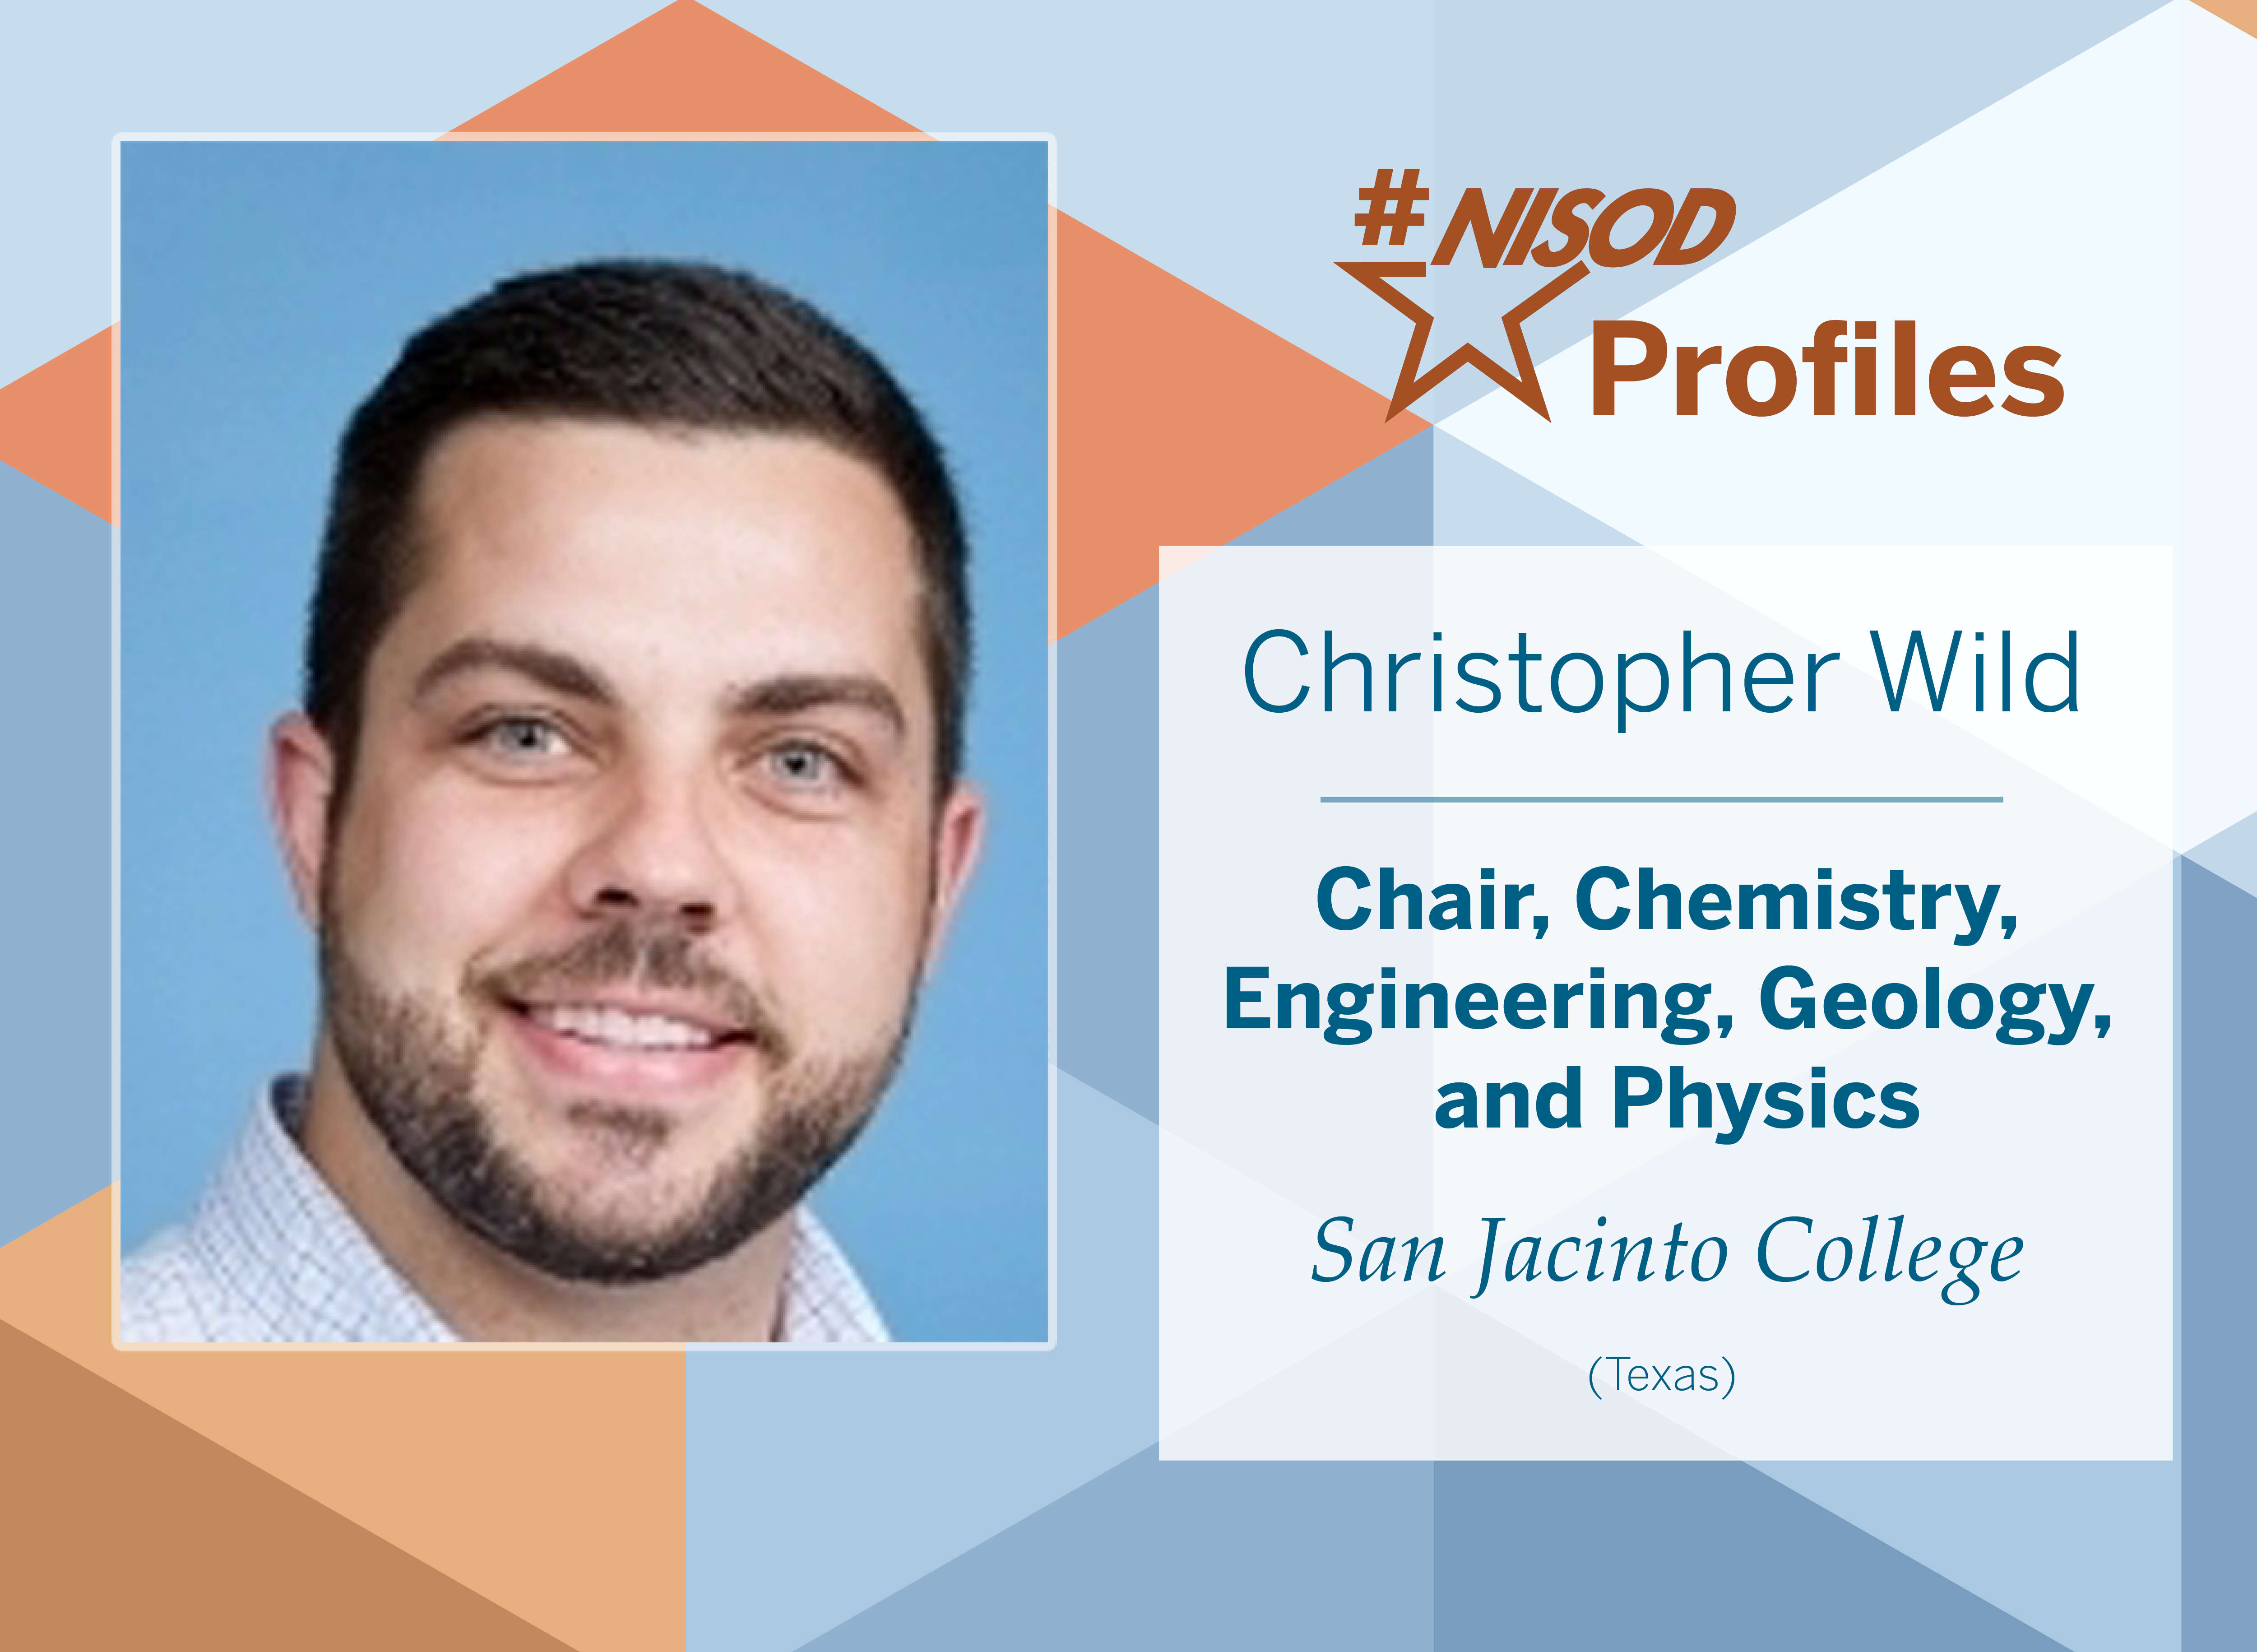 #NISODProfiles Christopher Wild